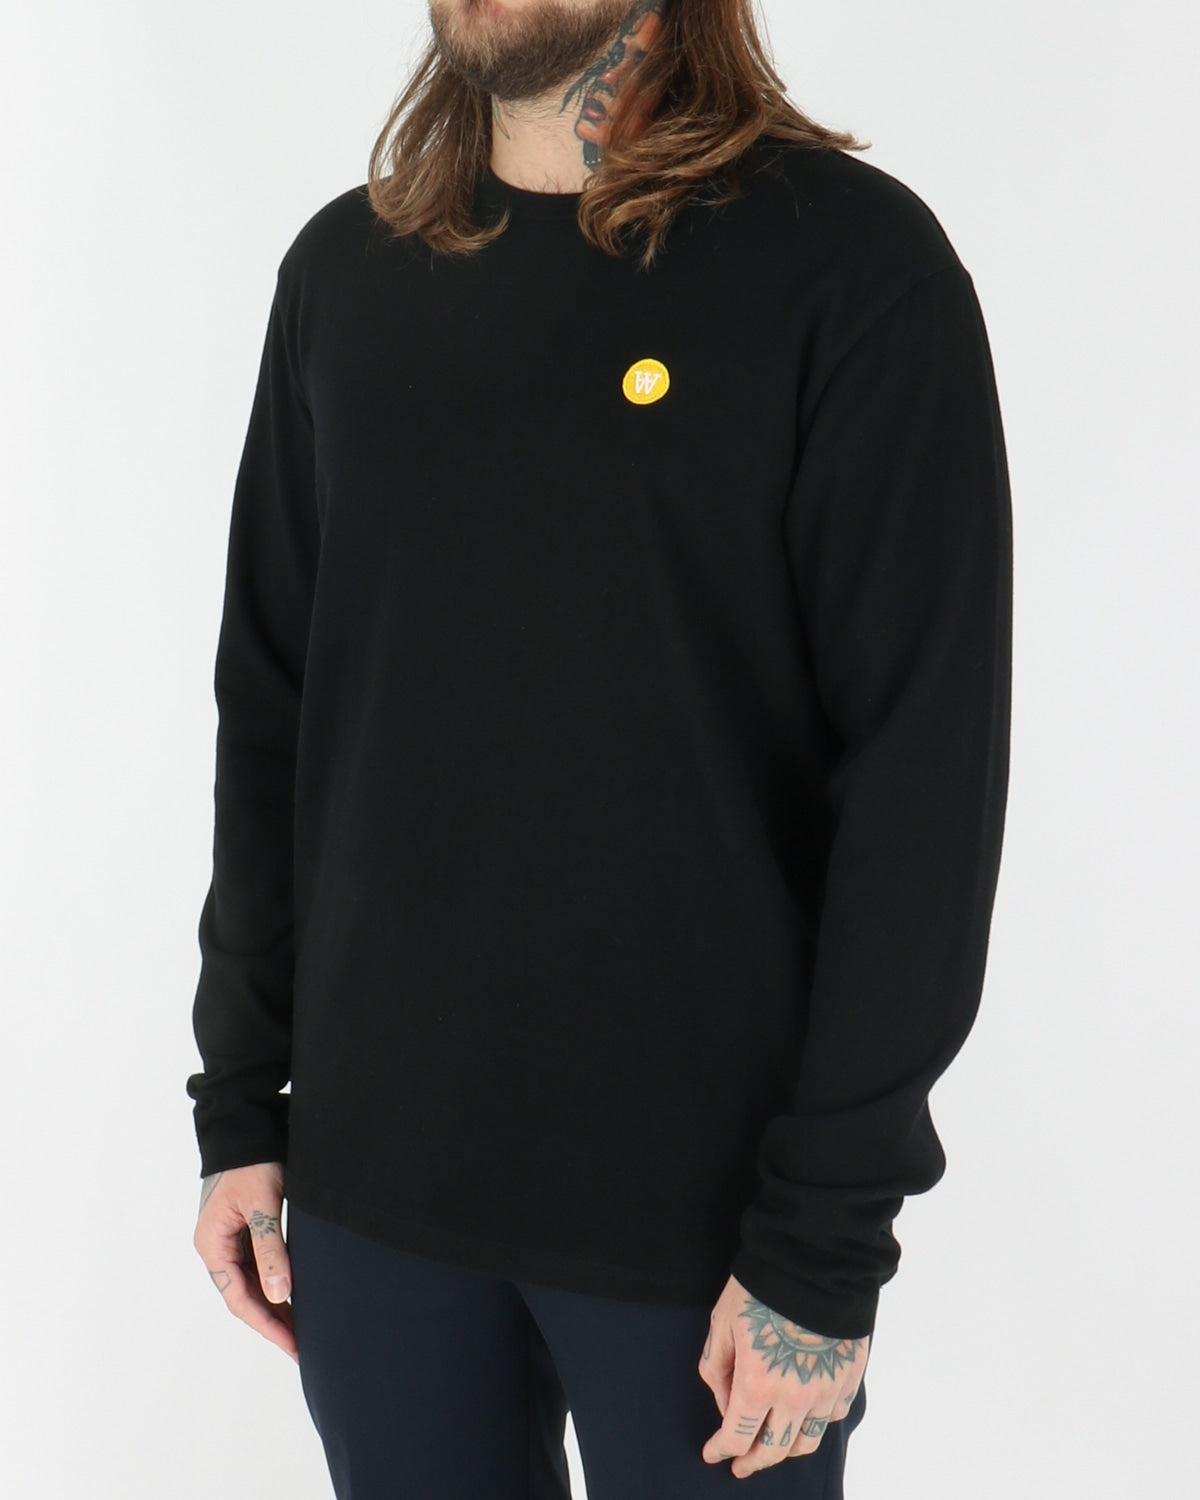 wood wood_mel longsleeve_black_view_2_3